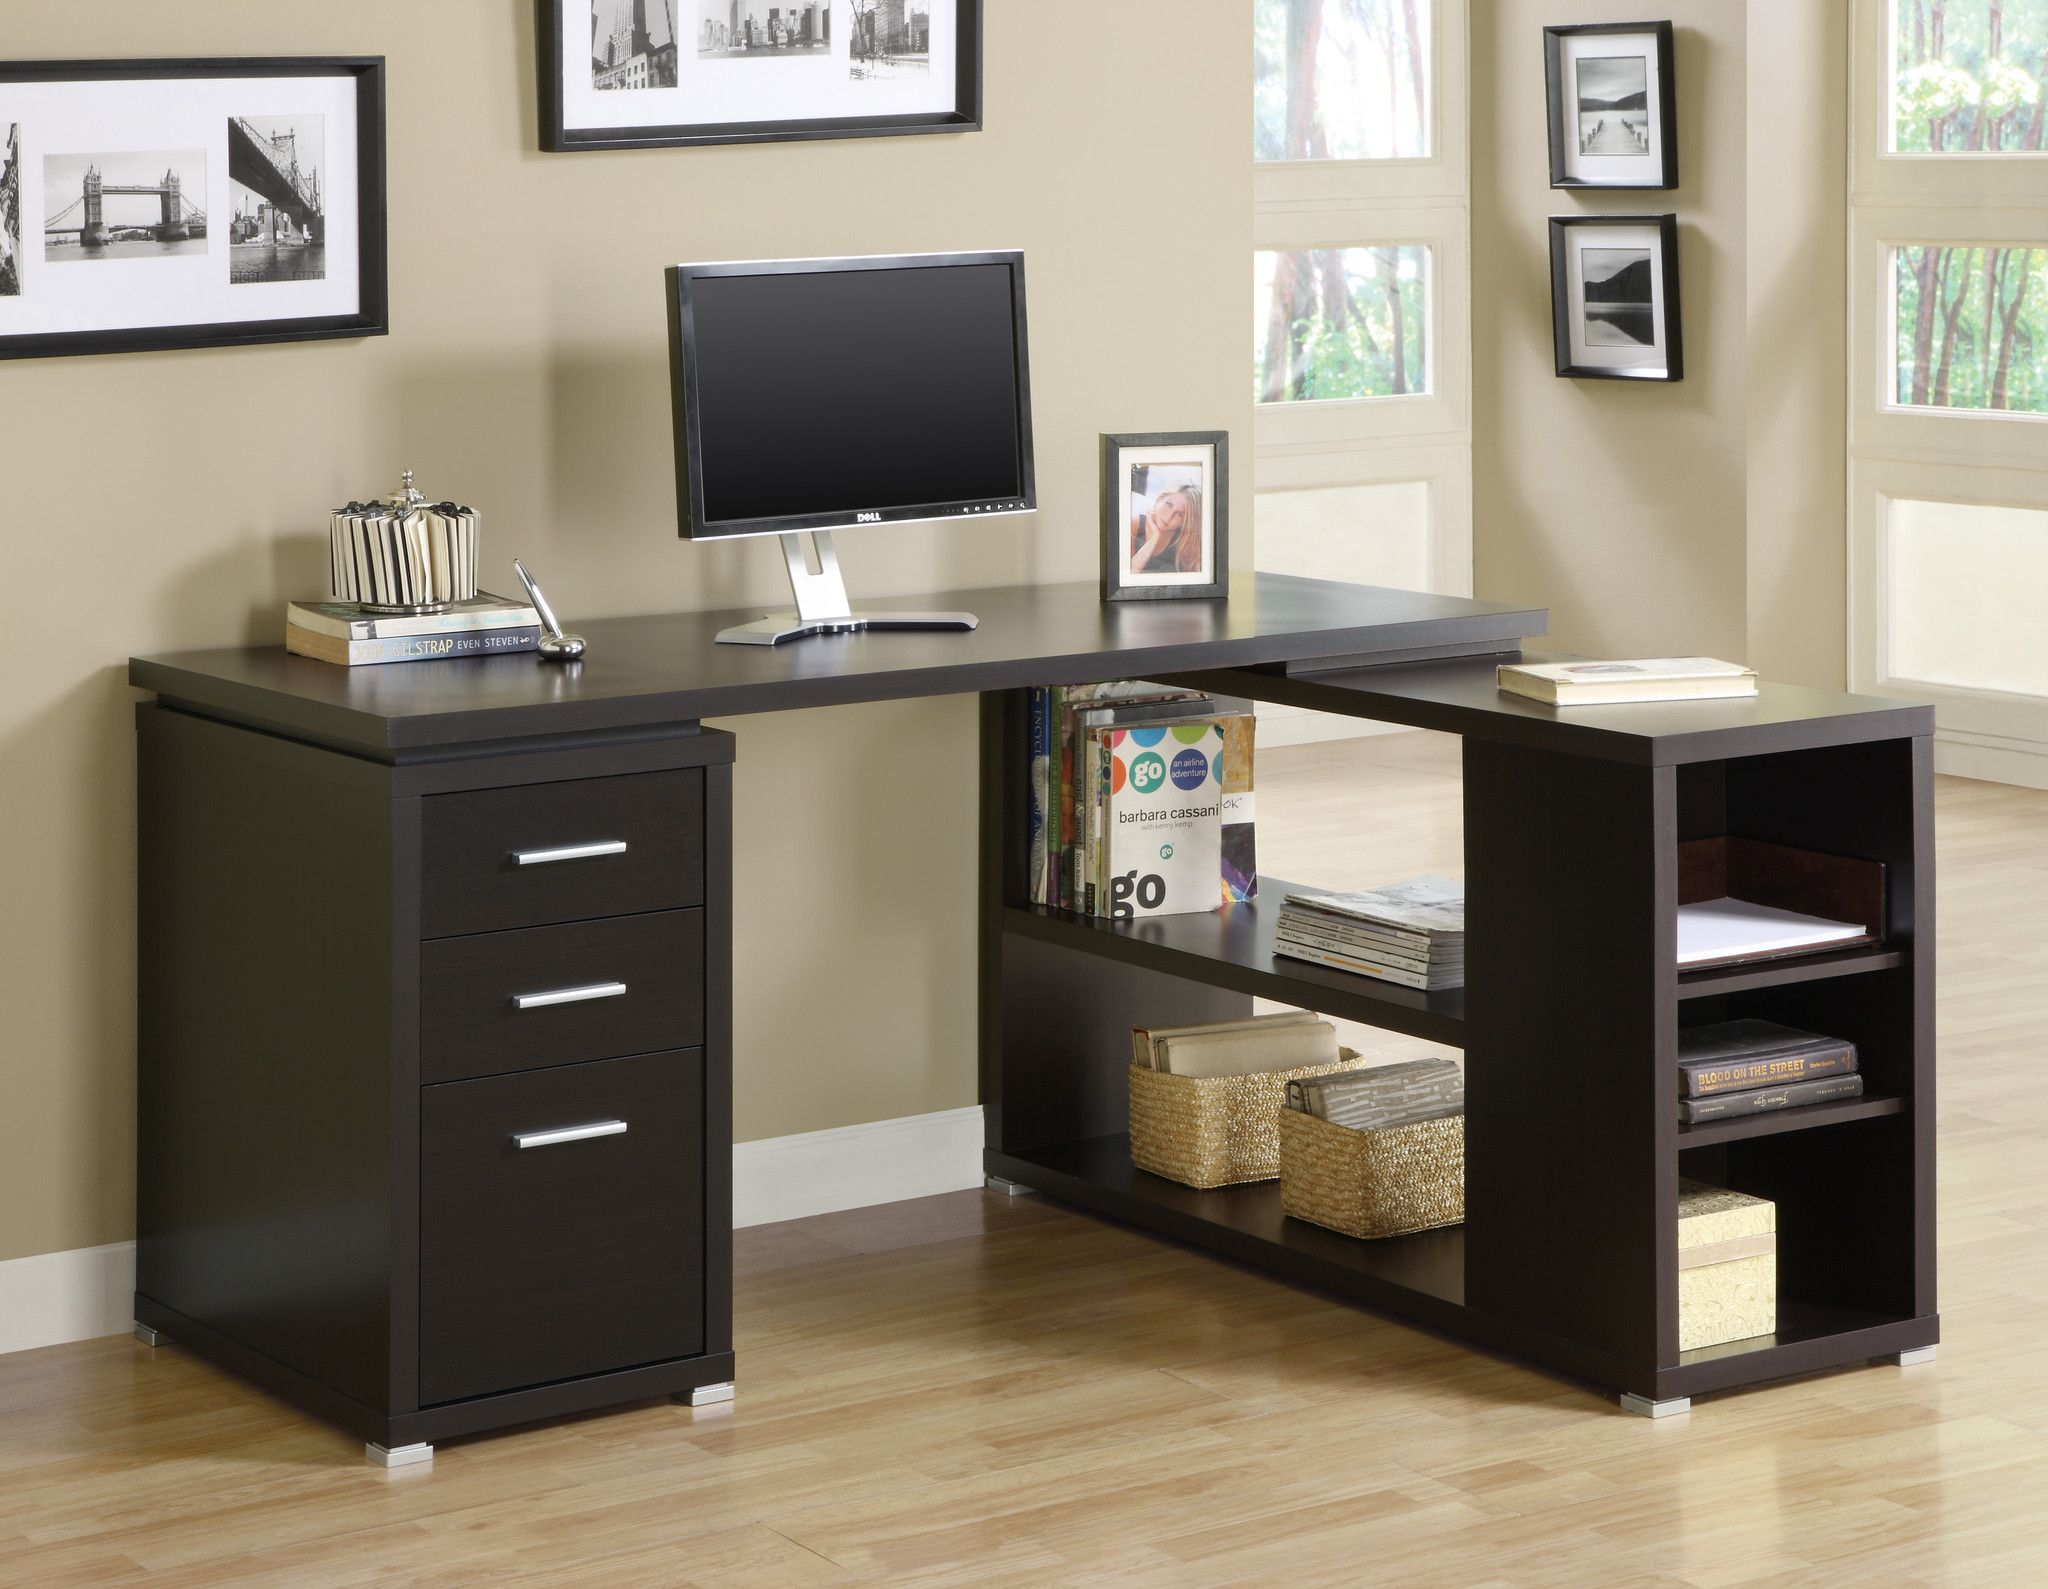 Filliqvist The Pine Knoll Office Desk File Cabinet Desk Diy Desk Desk Organization Workspaces